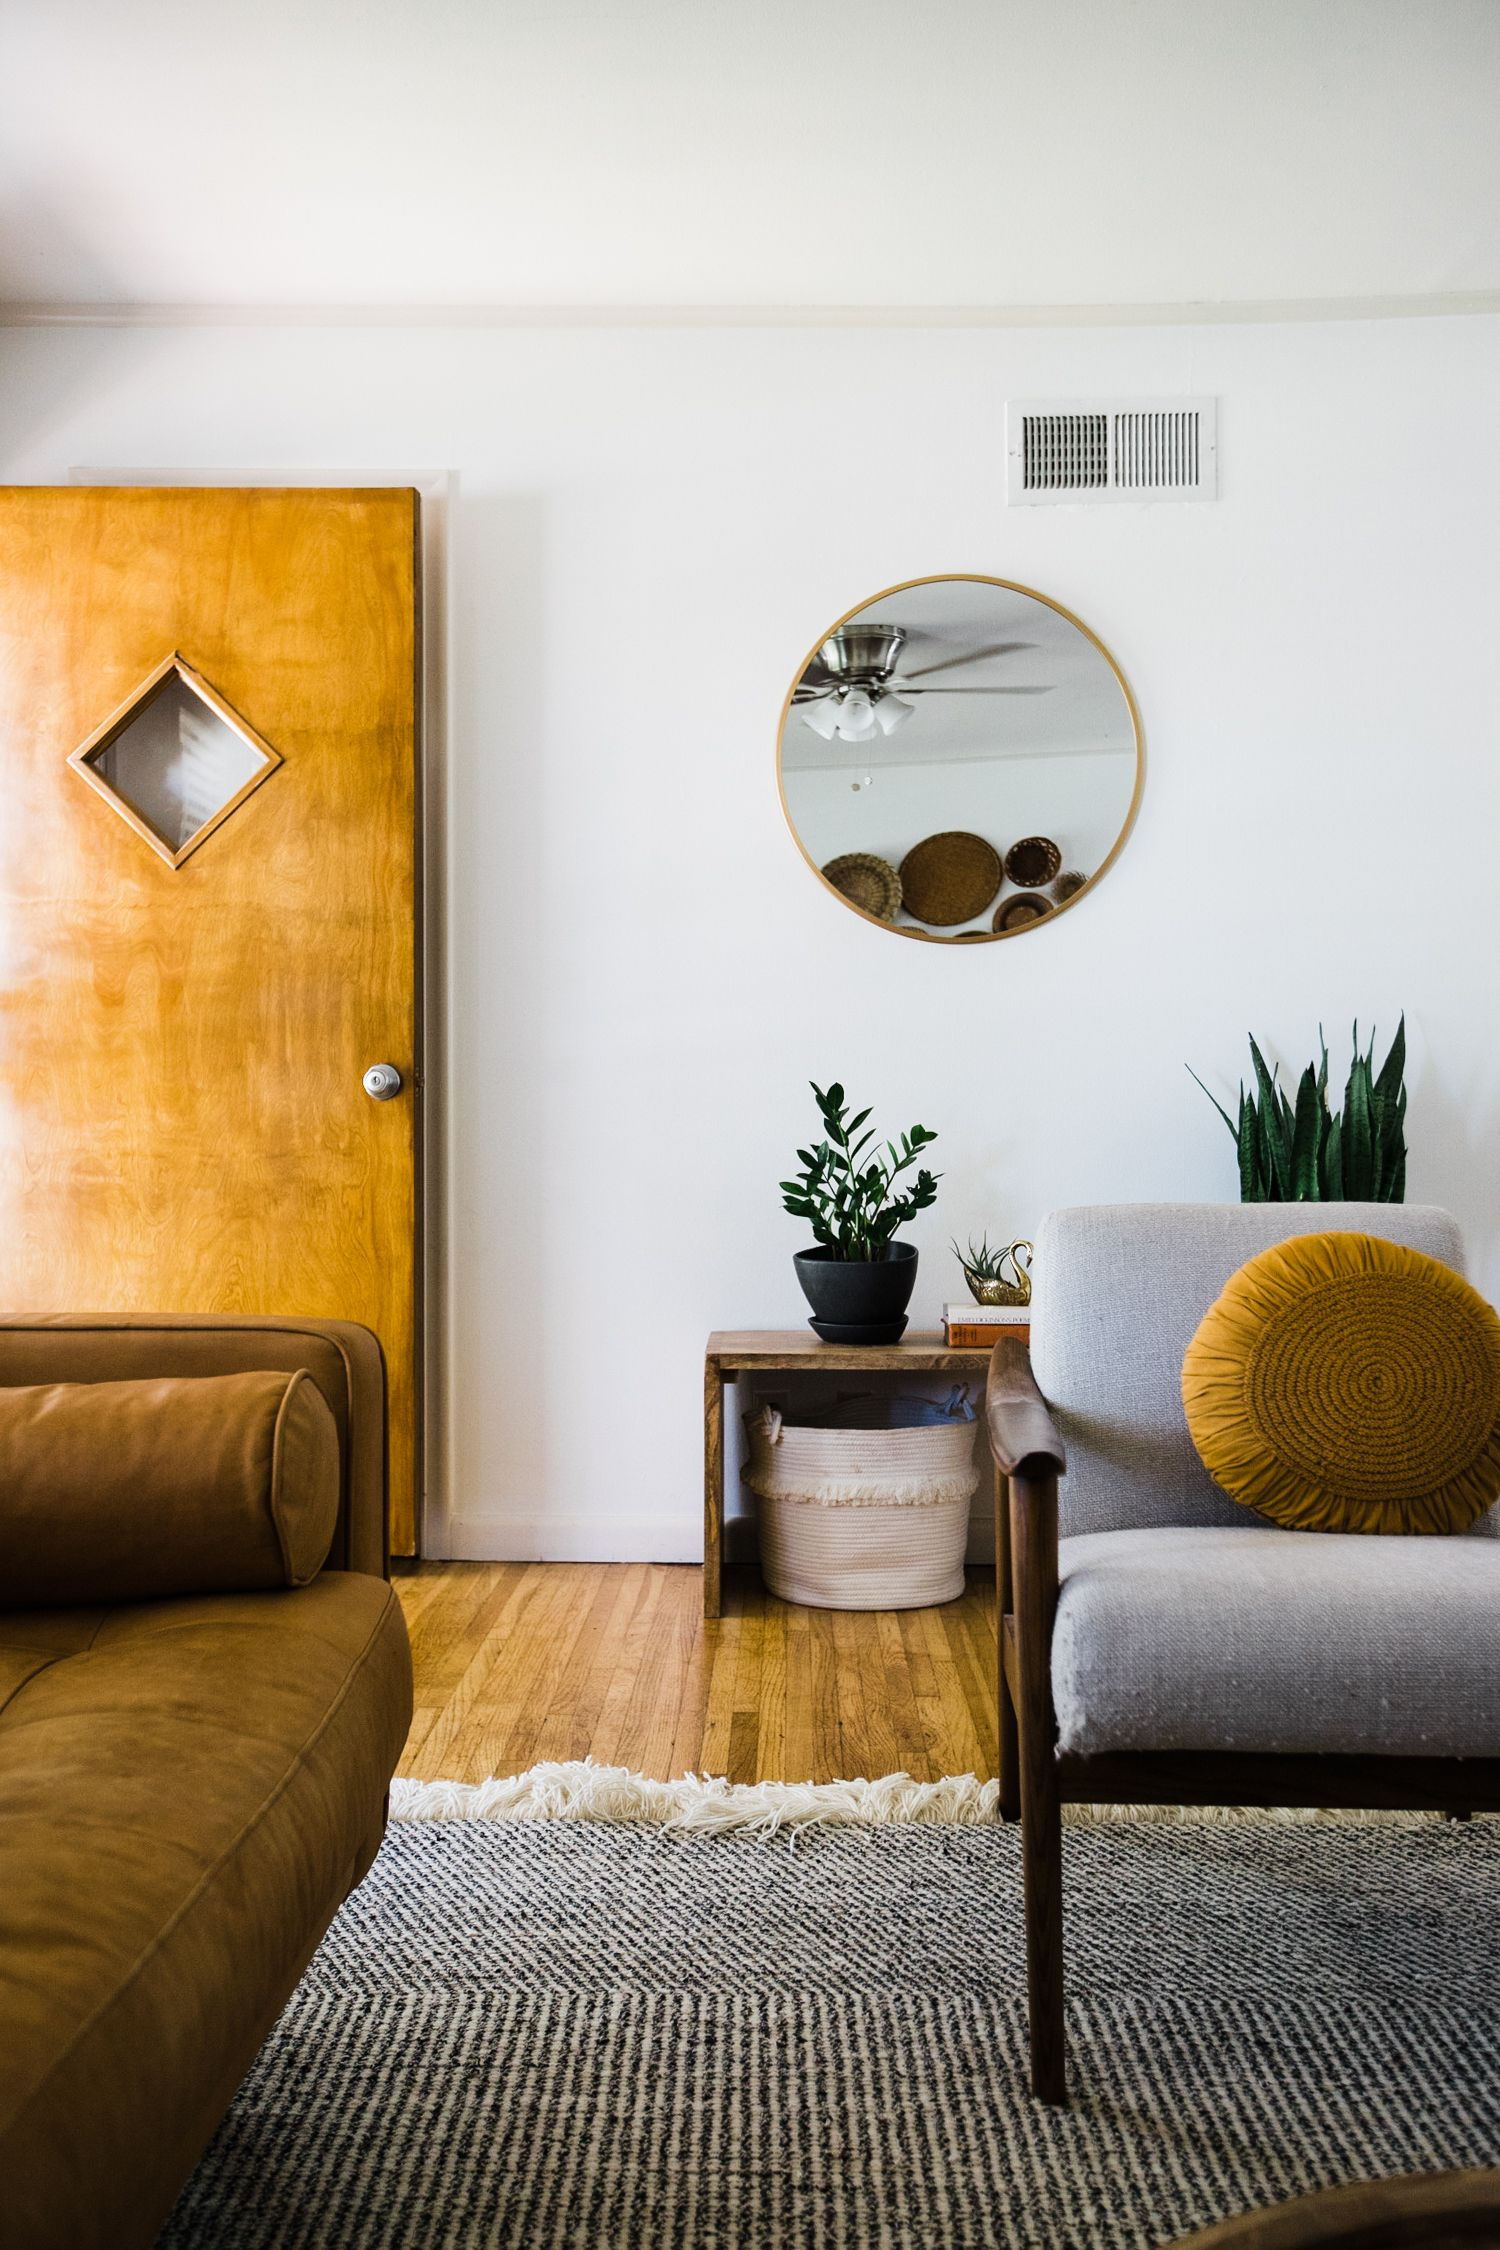 Midwest Home Tour An Earthy Modern Abode Retro Den Vintage Furniture And Homewares Home Decor Bedroom Earthy Home Decor Home Interior Design [ 2250 x 1500 Pixel ]